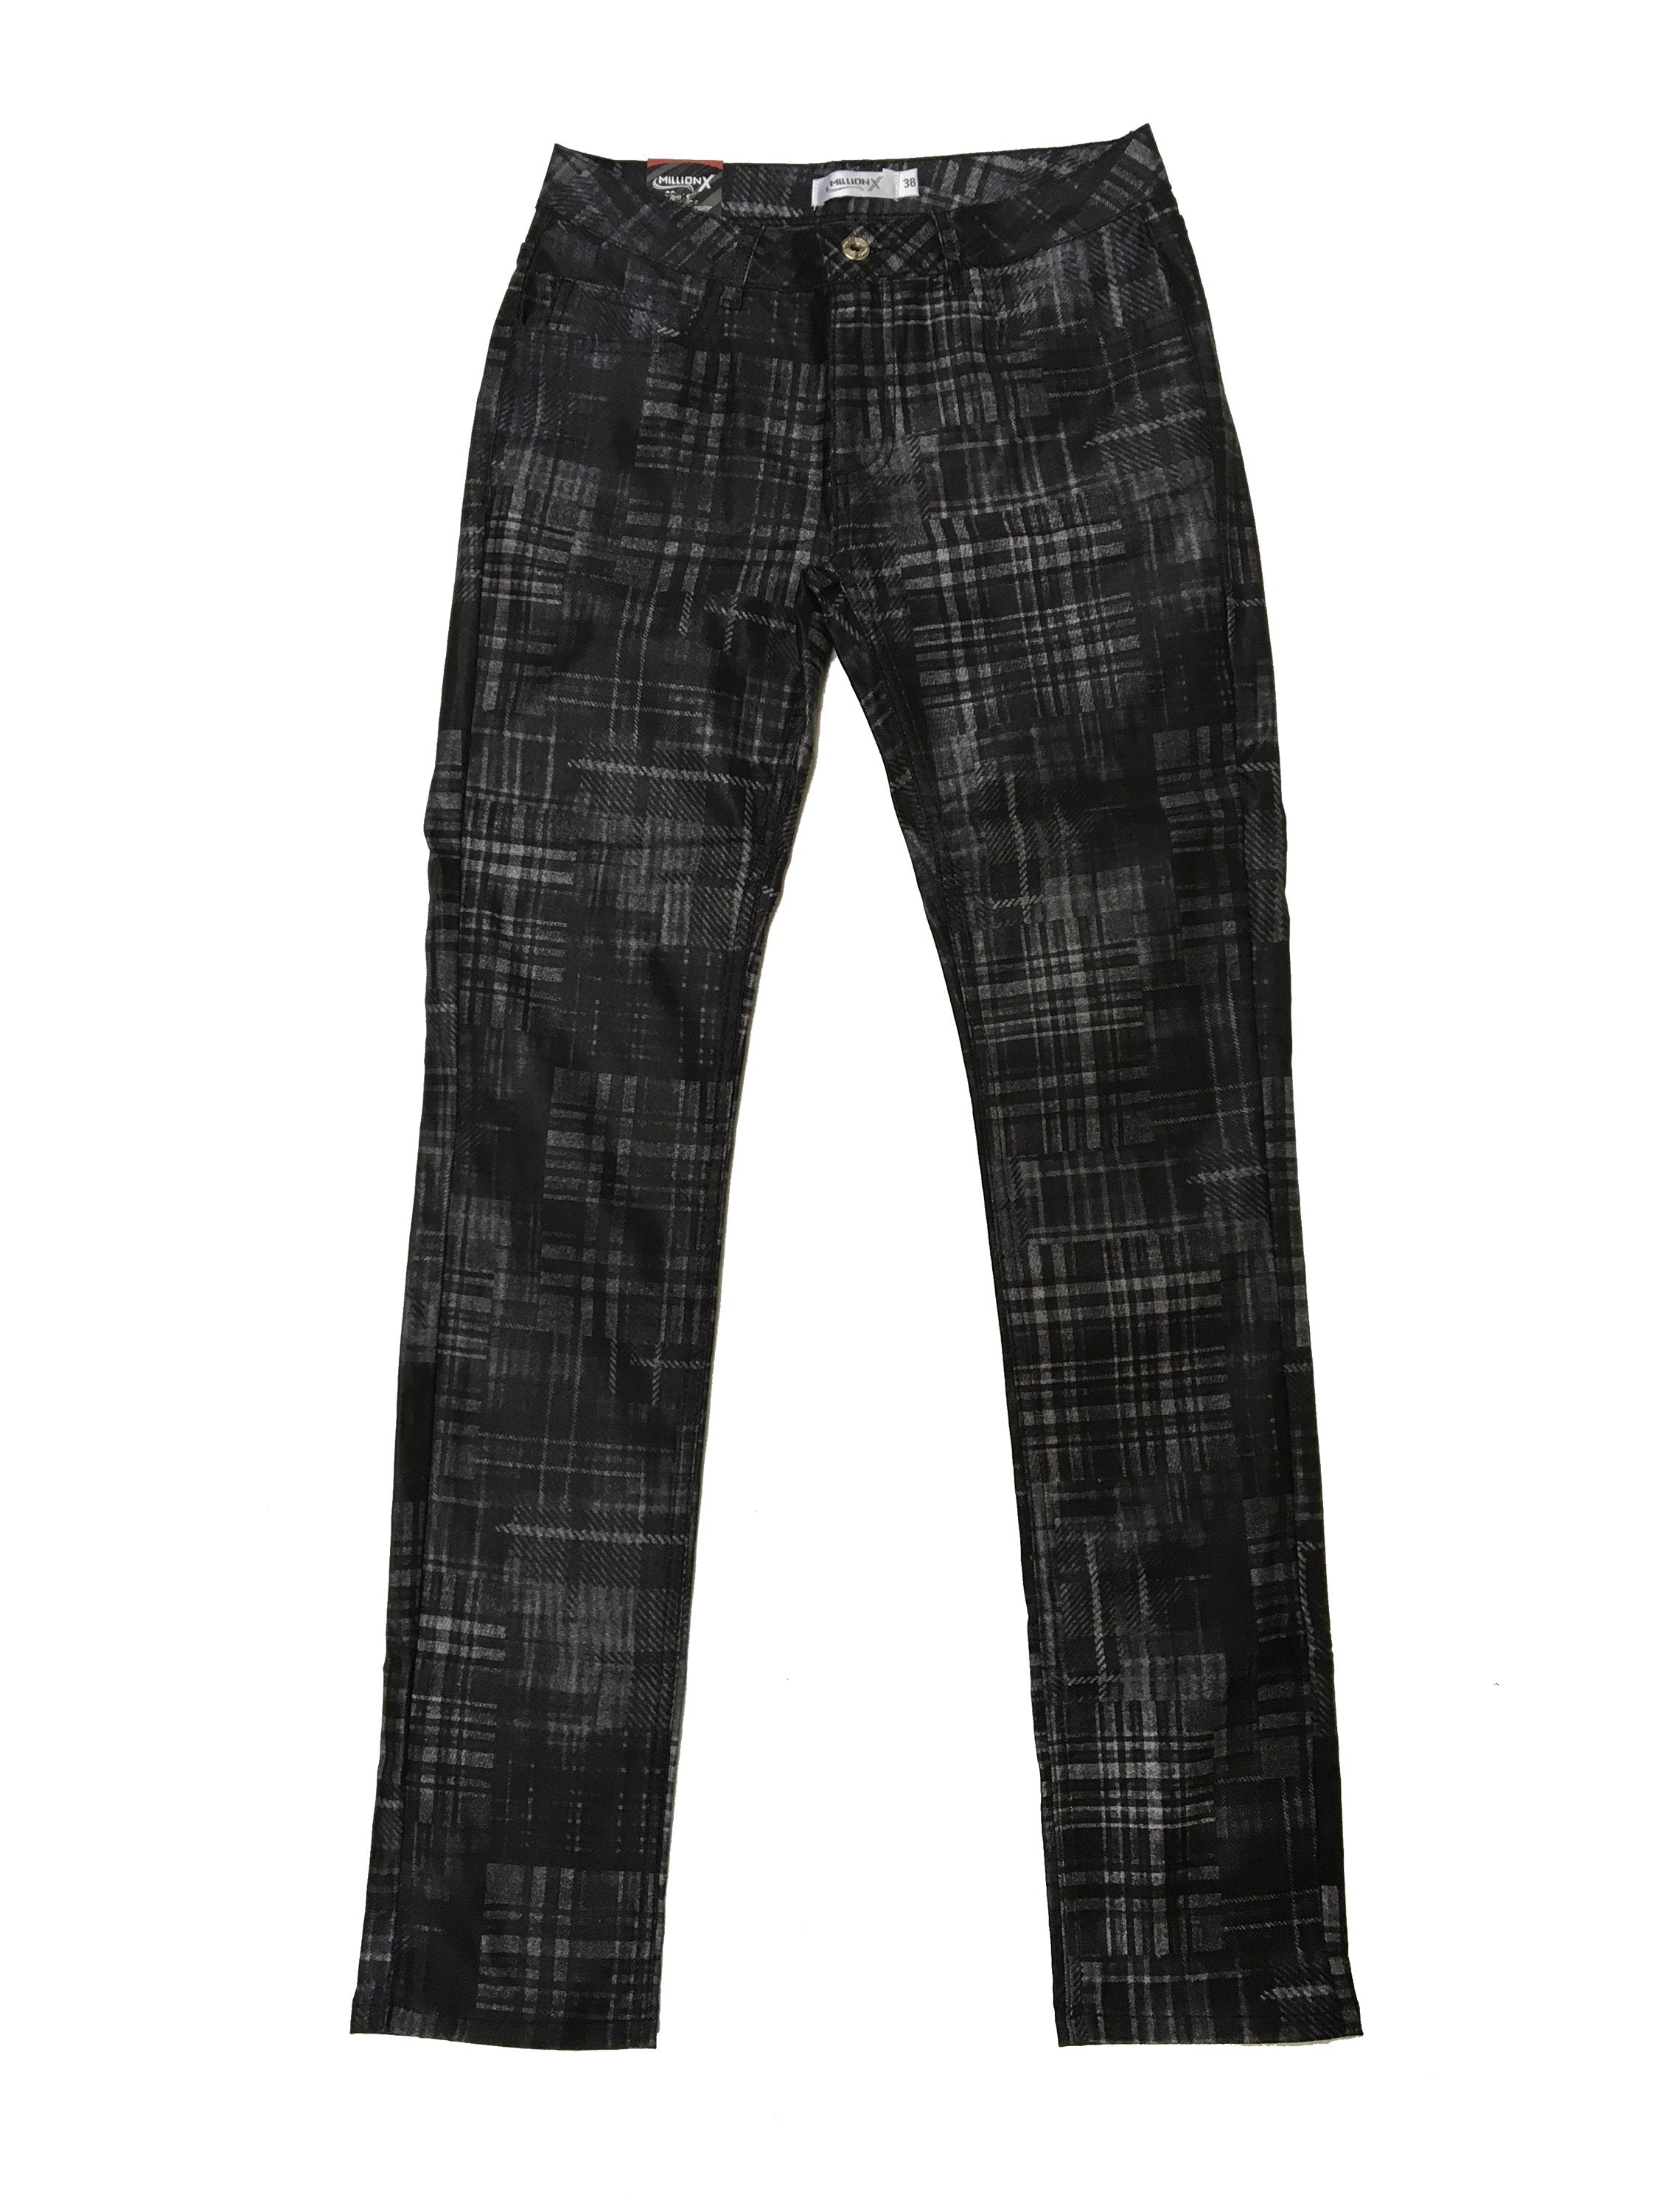 Damen Hose Victoria open check